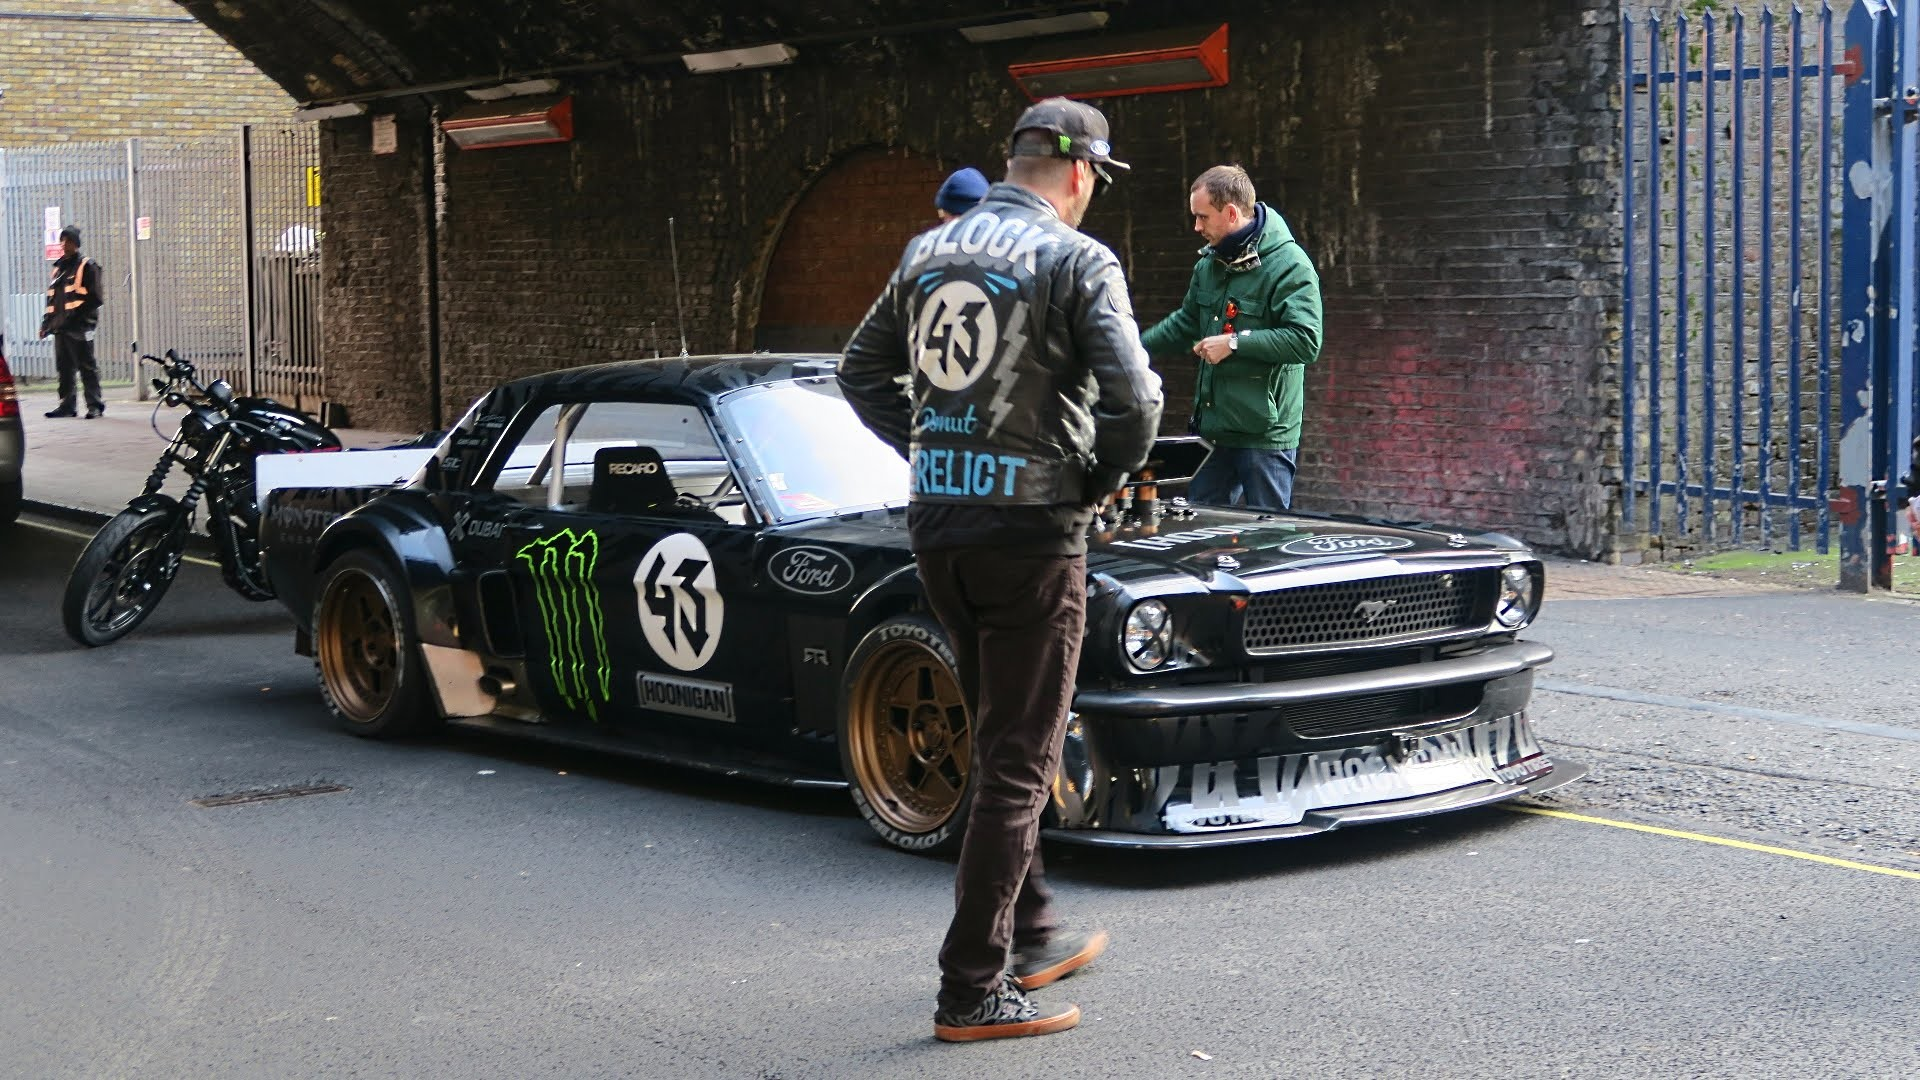 Monster Energy Iphone Wallpaper Ken Block Mustang Wallpaper 78 Images